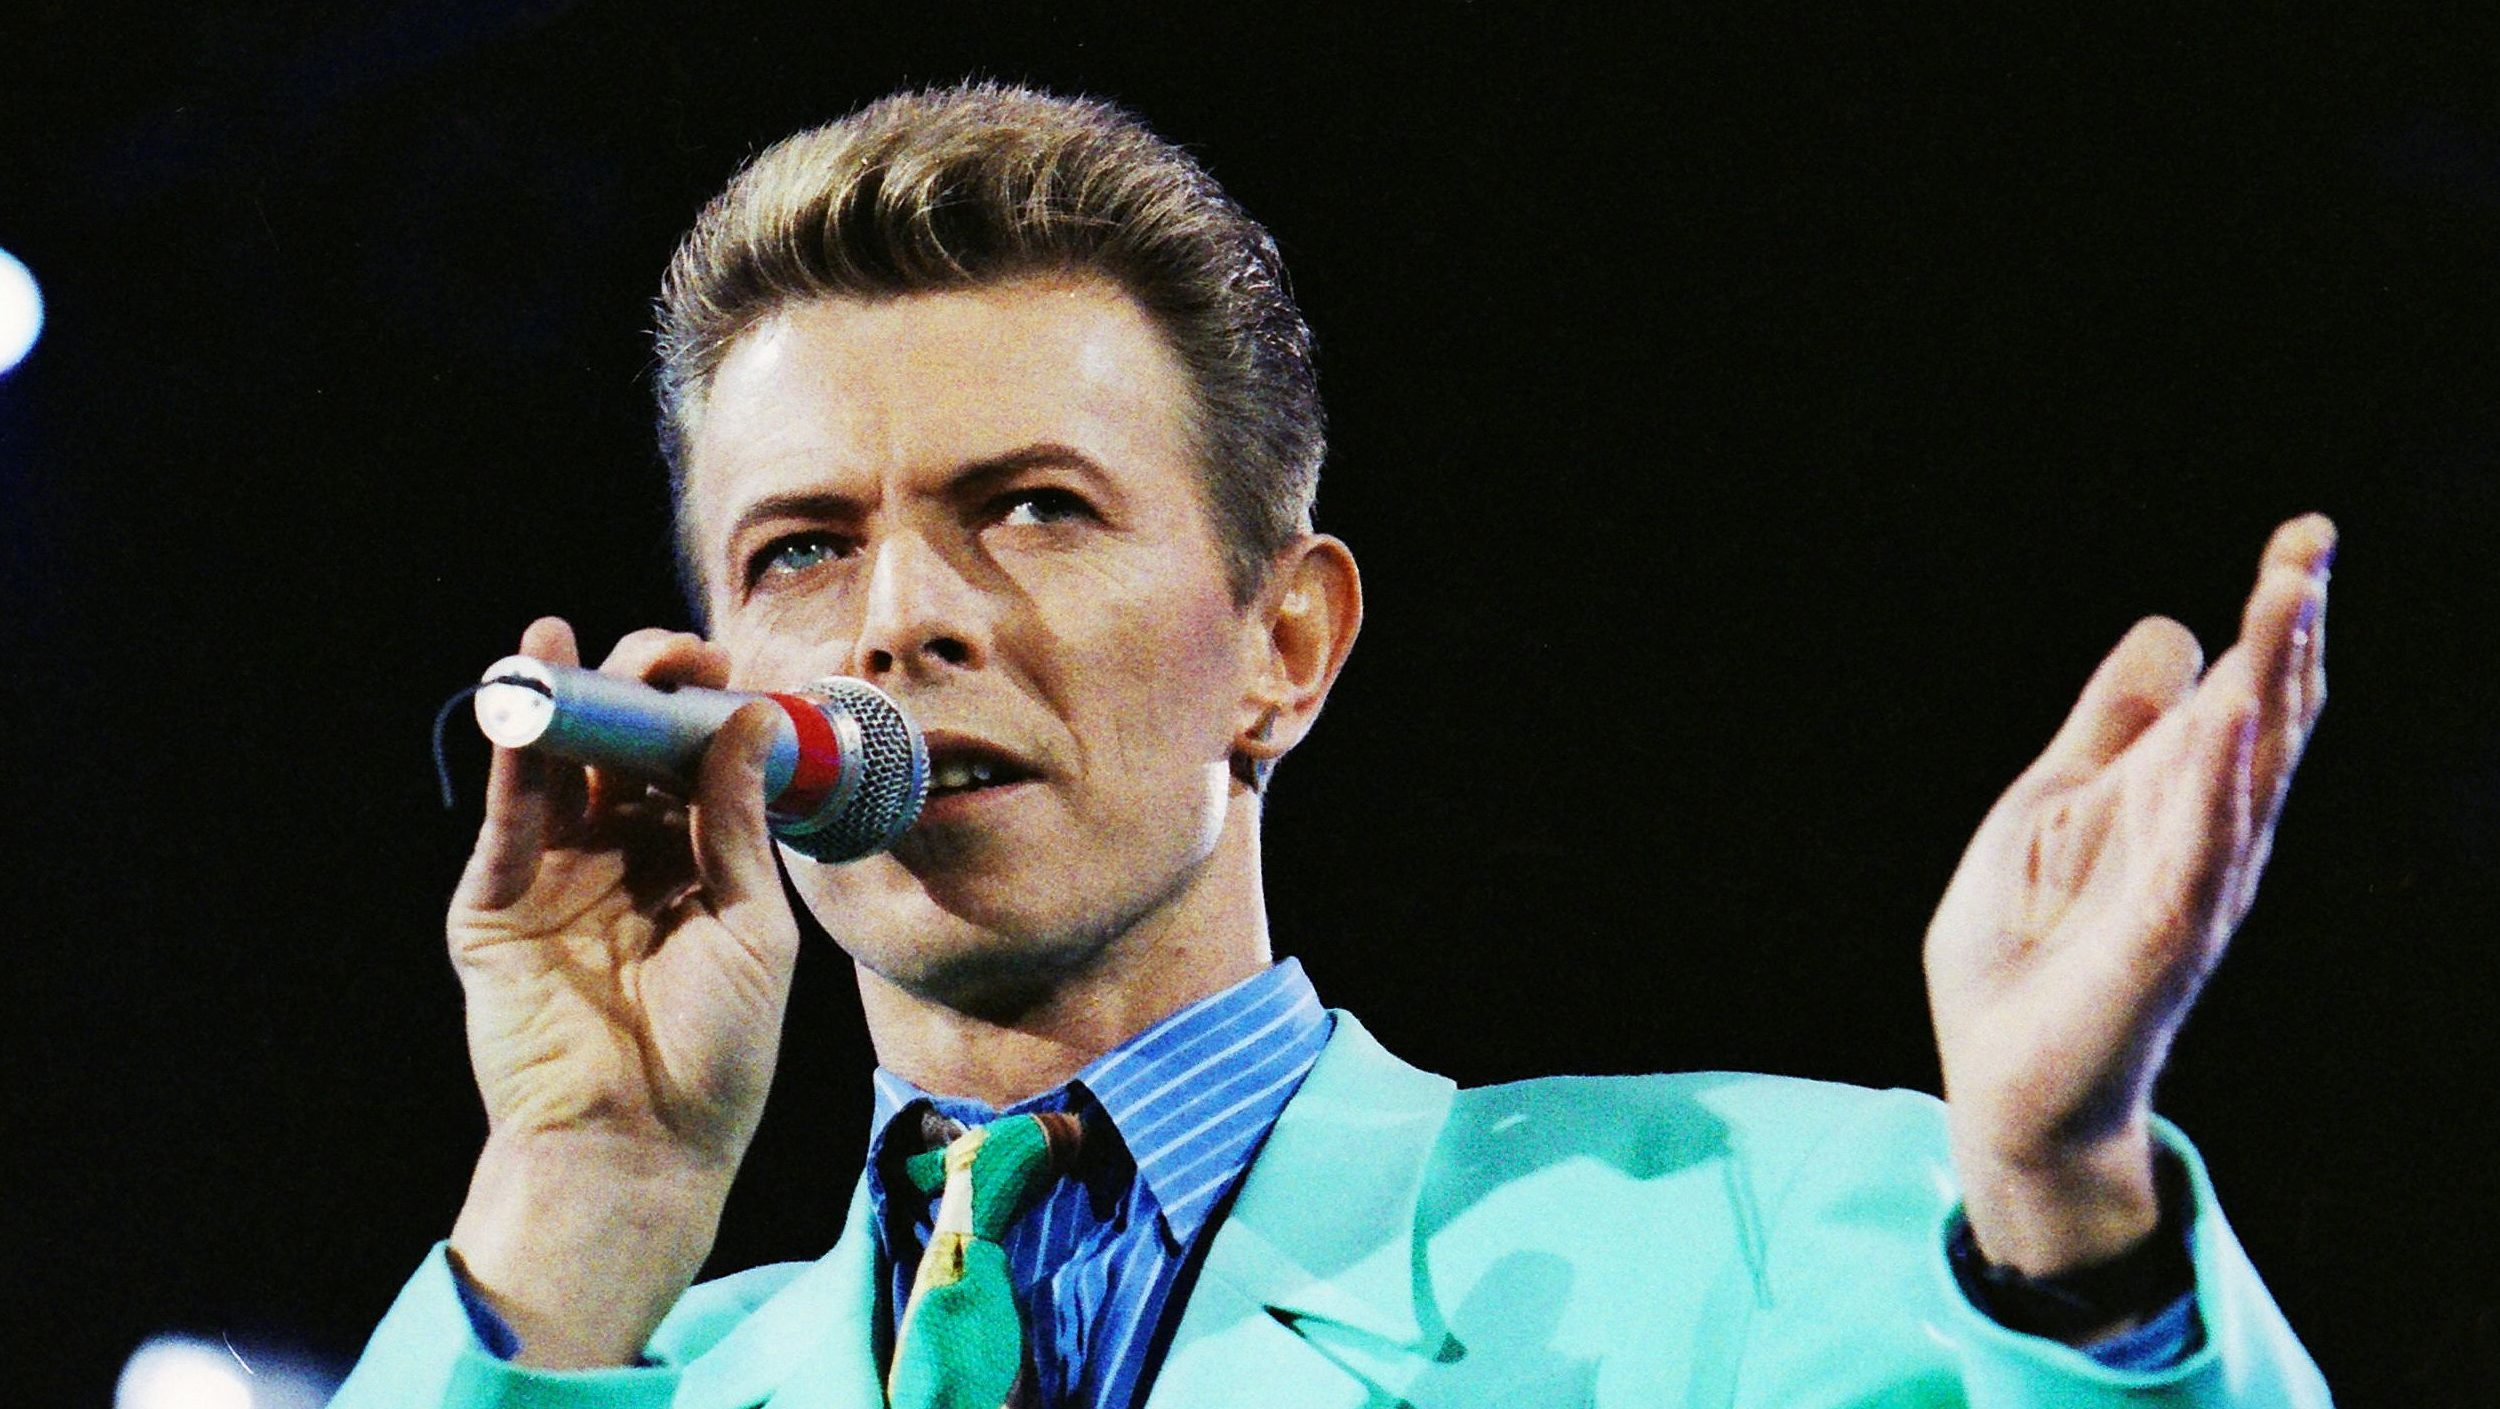 David Bowie performs on stage during The Freddie Mercury Tribute Concert at Wembley Stadium in London, Britain April 20, 1992